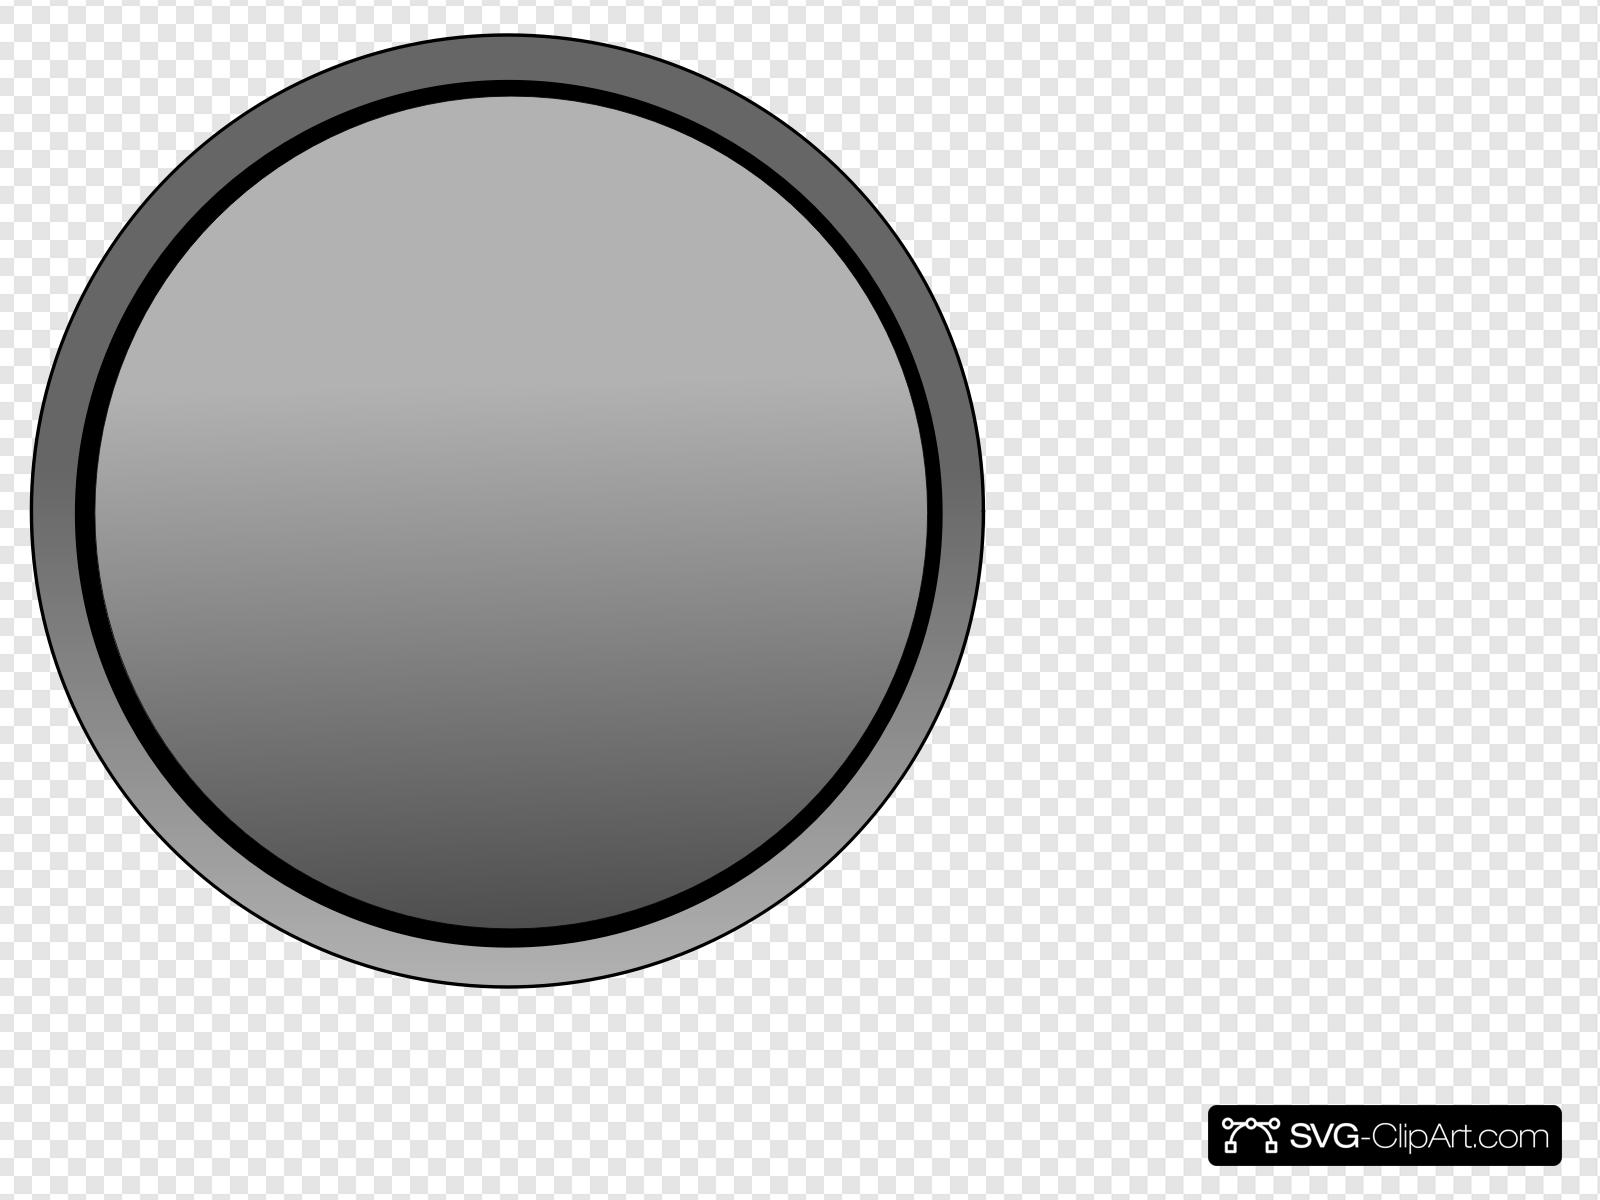 Gray Button Clip art, Icon and SVG.